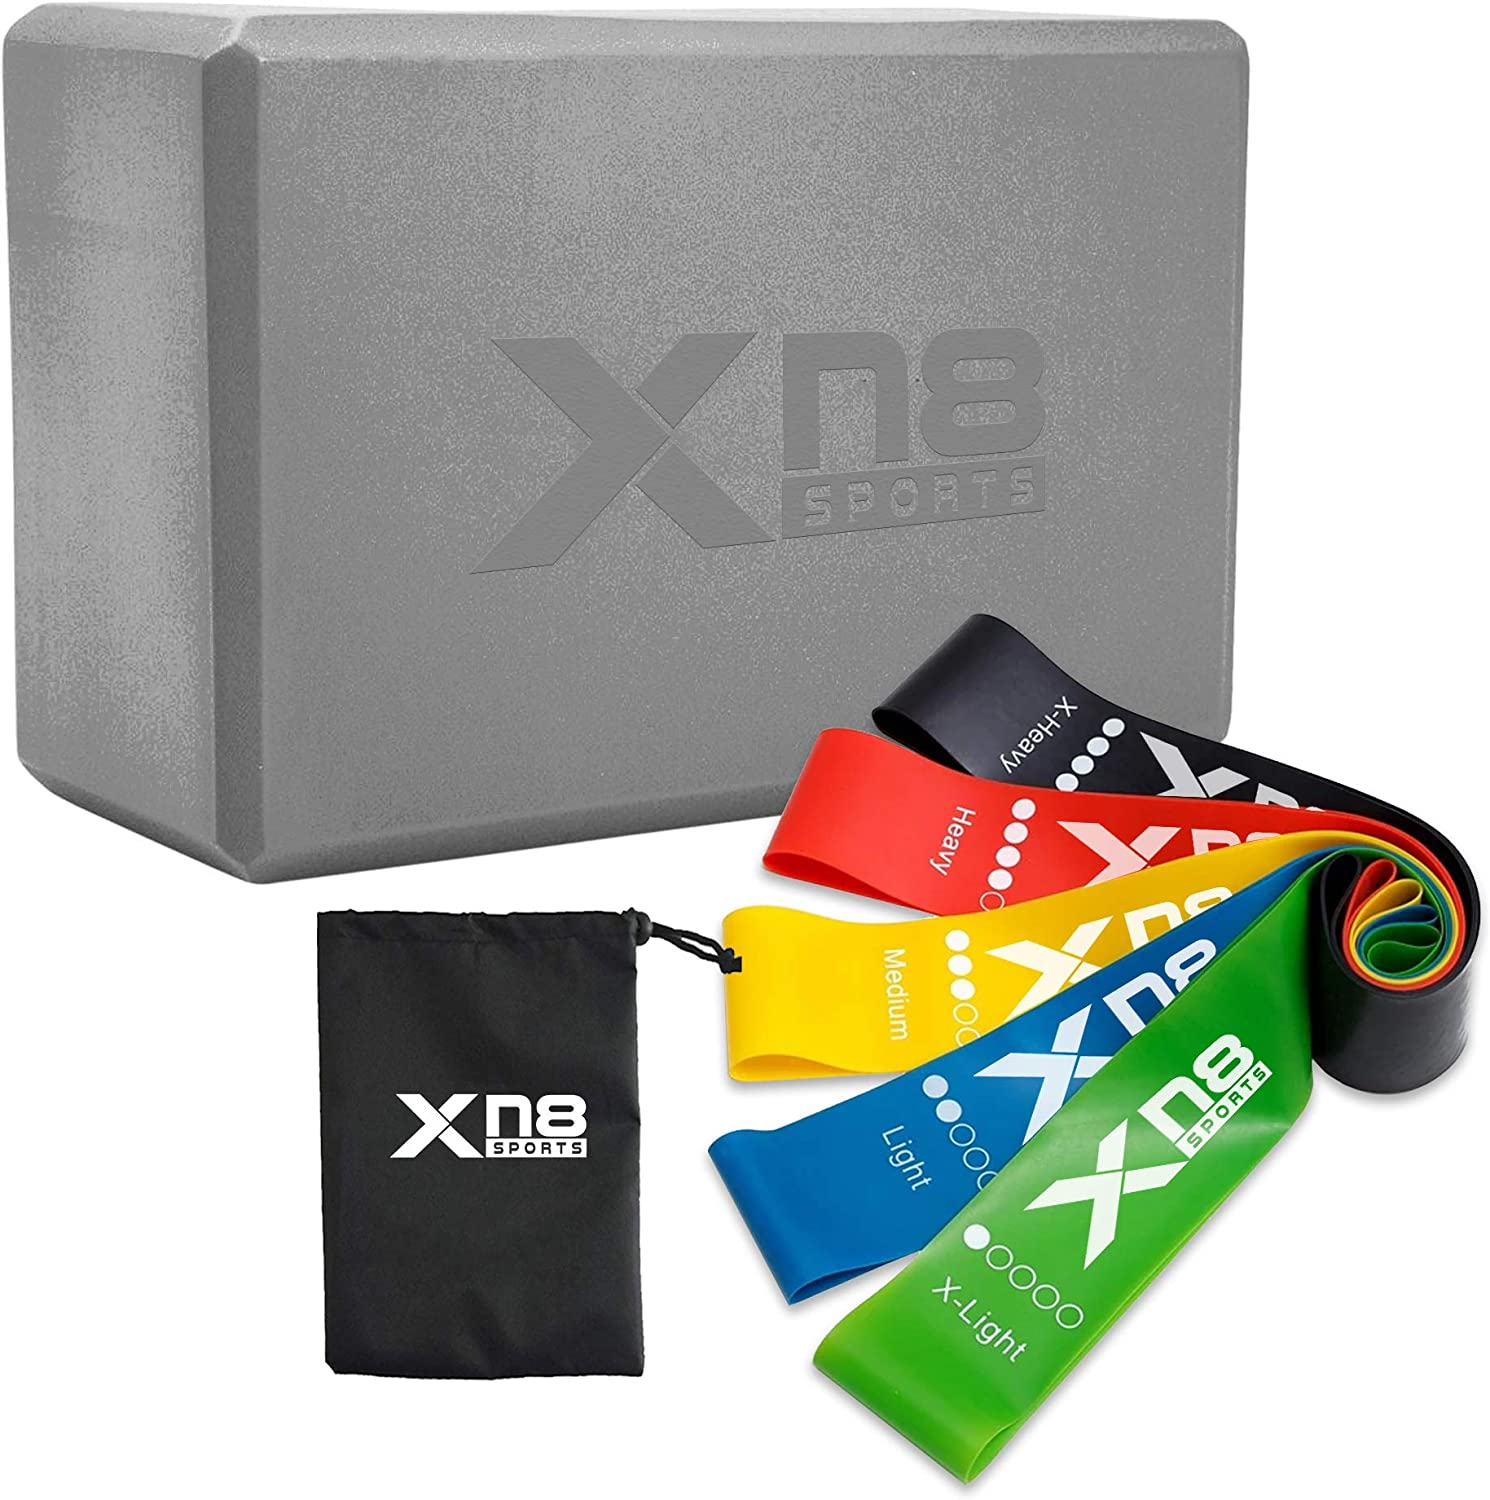 XN8 1 Max 71% OFF Pack Yoga Block 5 High-D Bands Bag Recommended with Resistance Workout